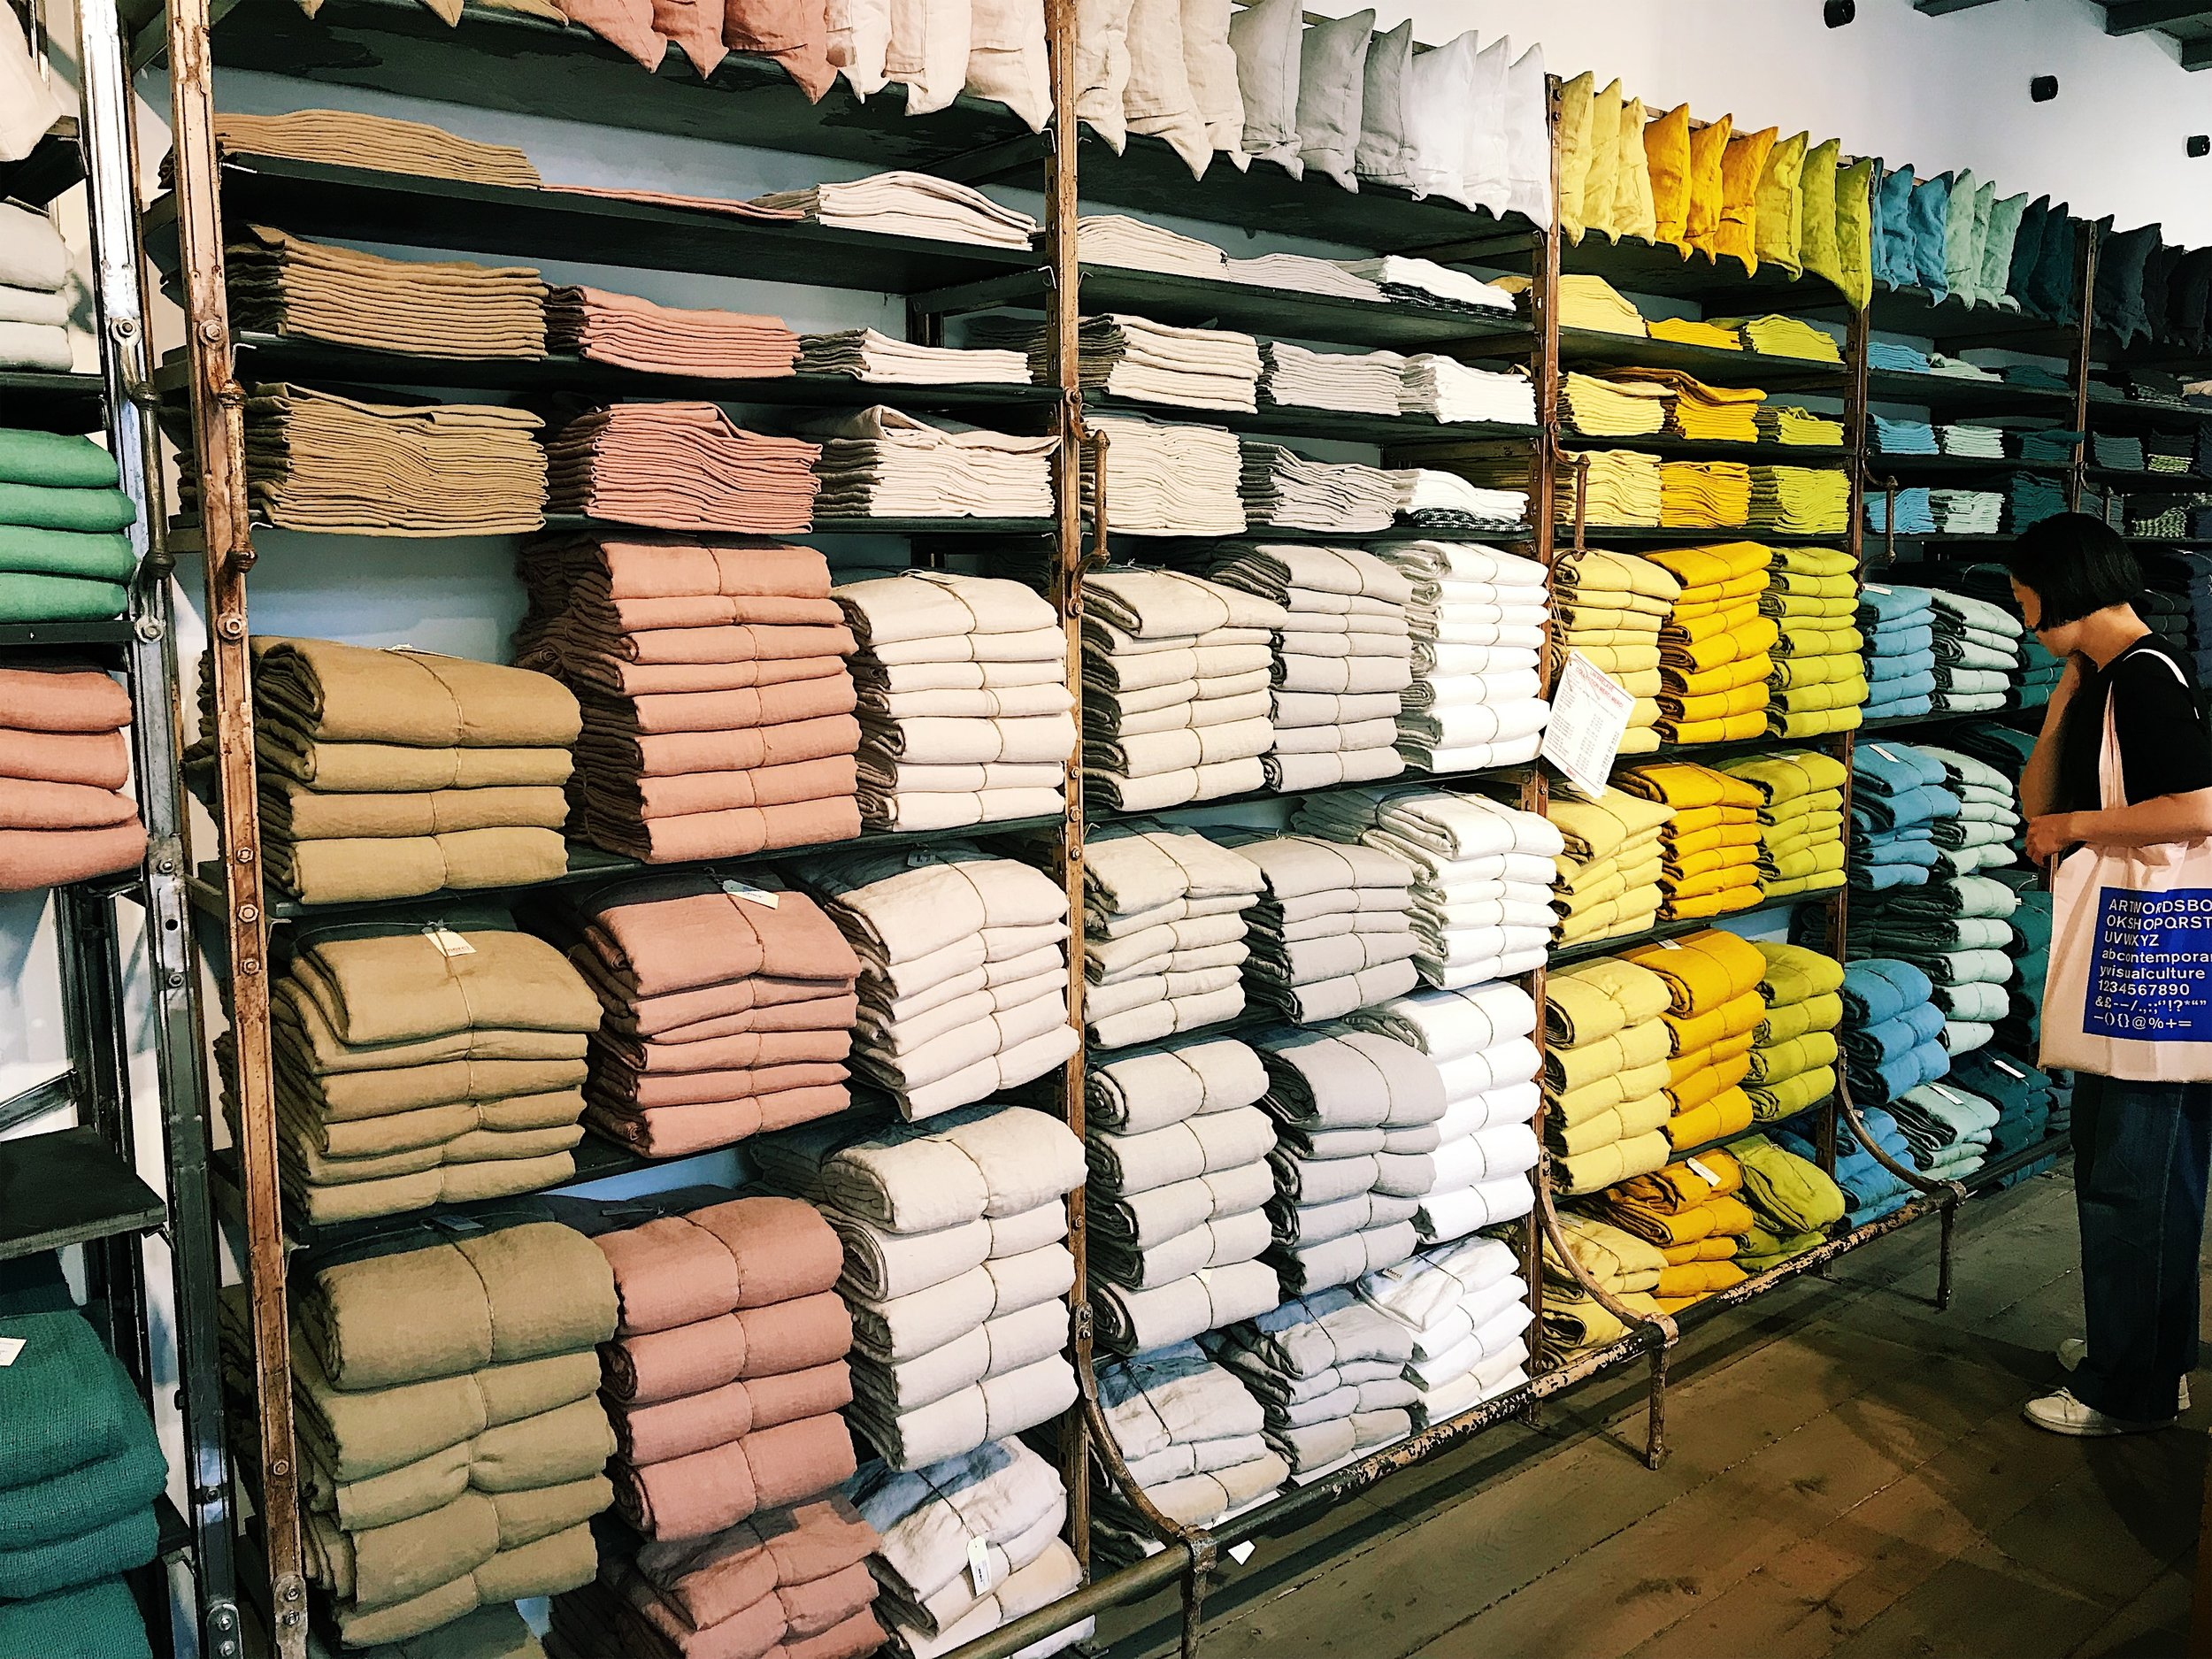 Just 1/3 of the linen collection at Merci Paris